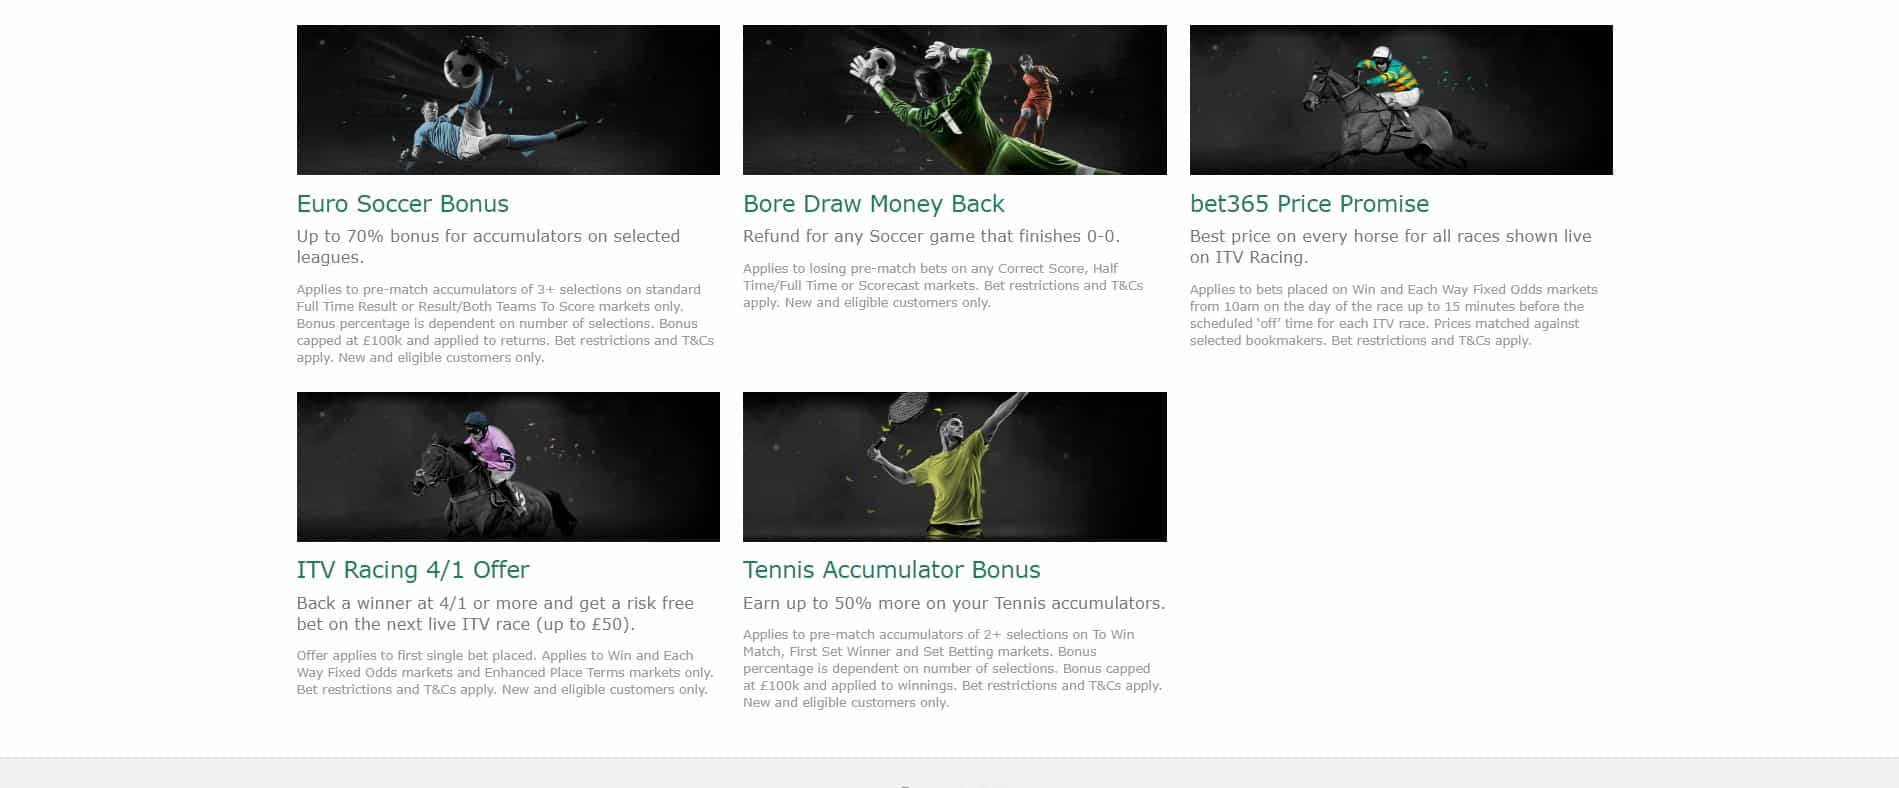 Bet365 Sportsbook Promotions